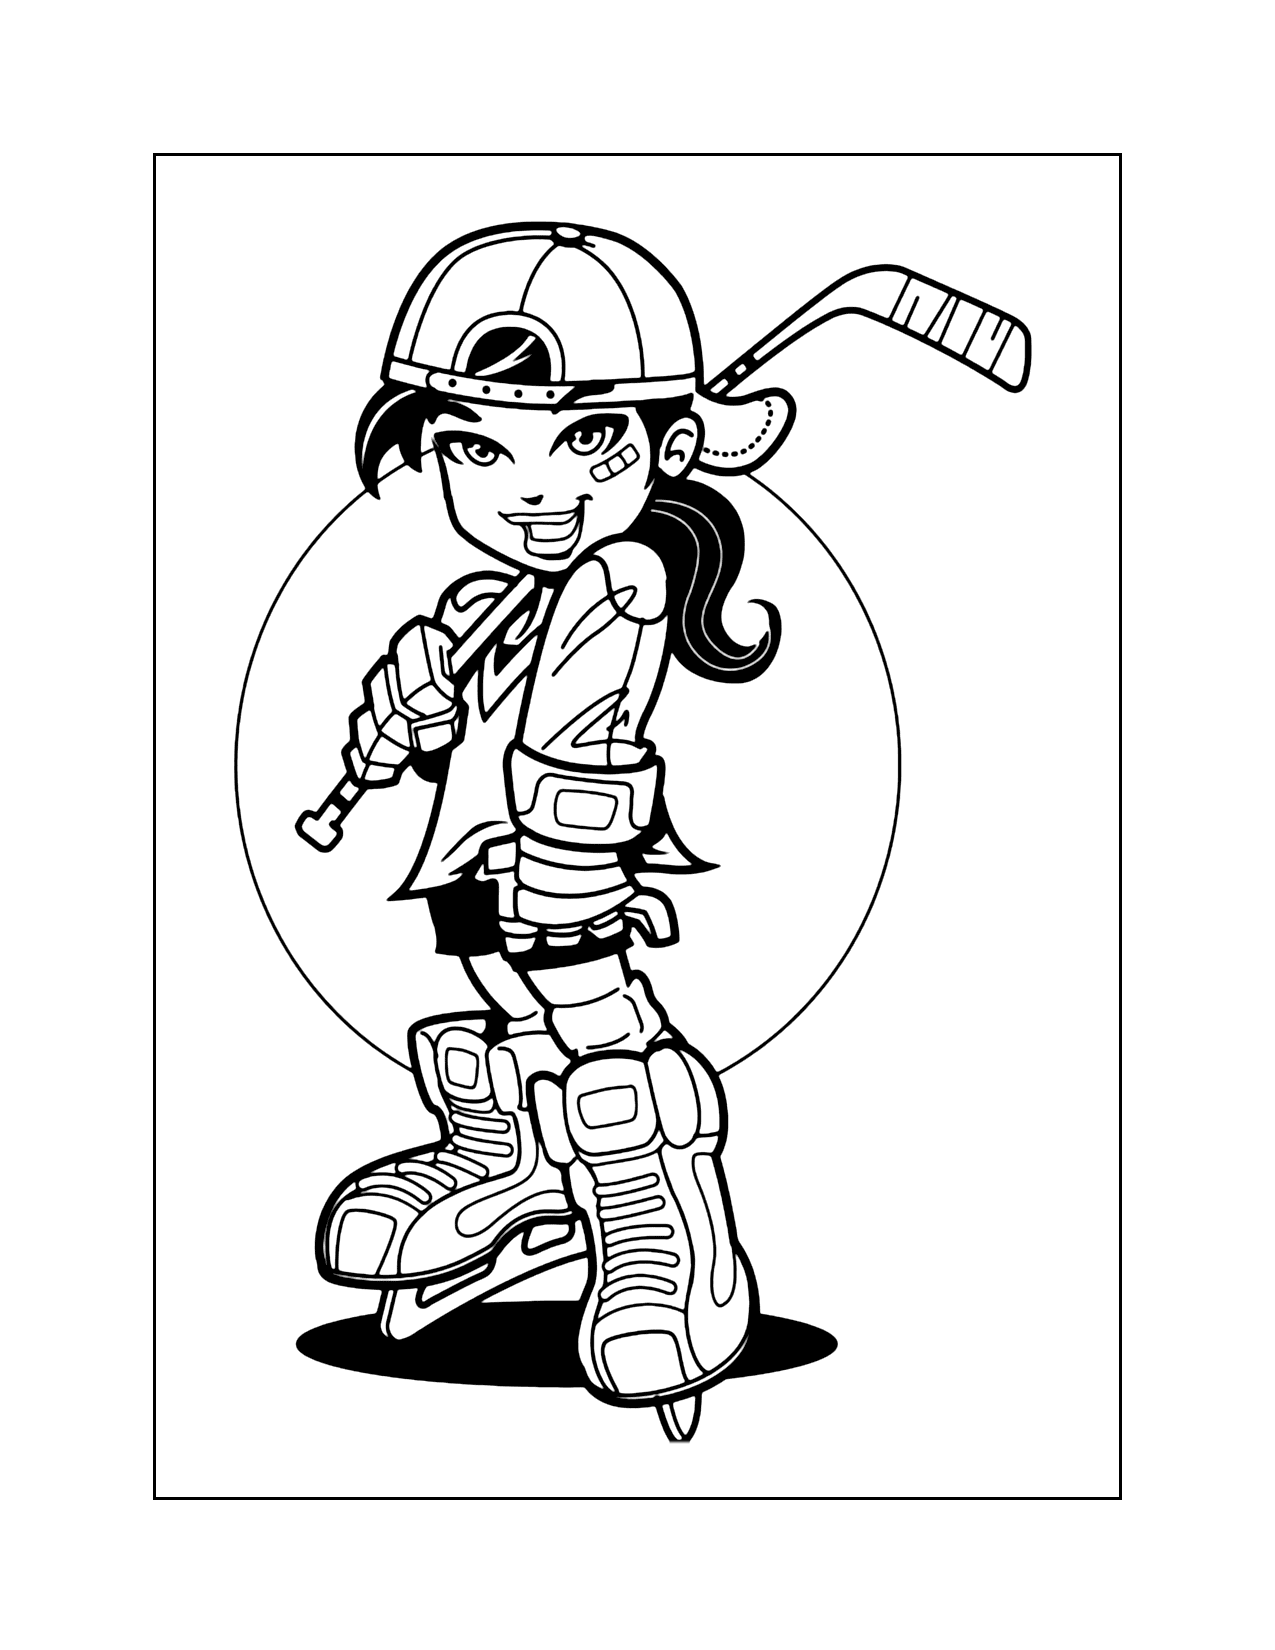 Cool Hockey Girl Coloring Page